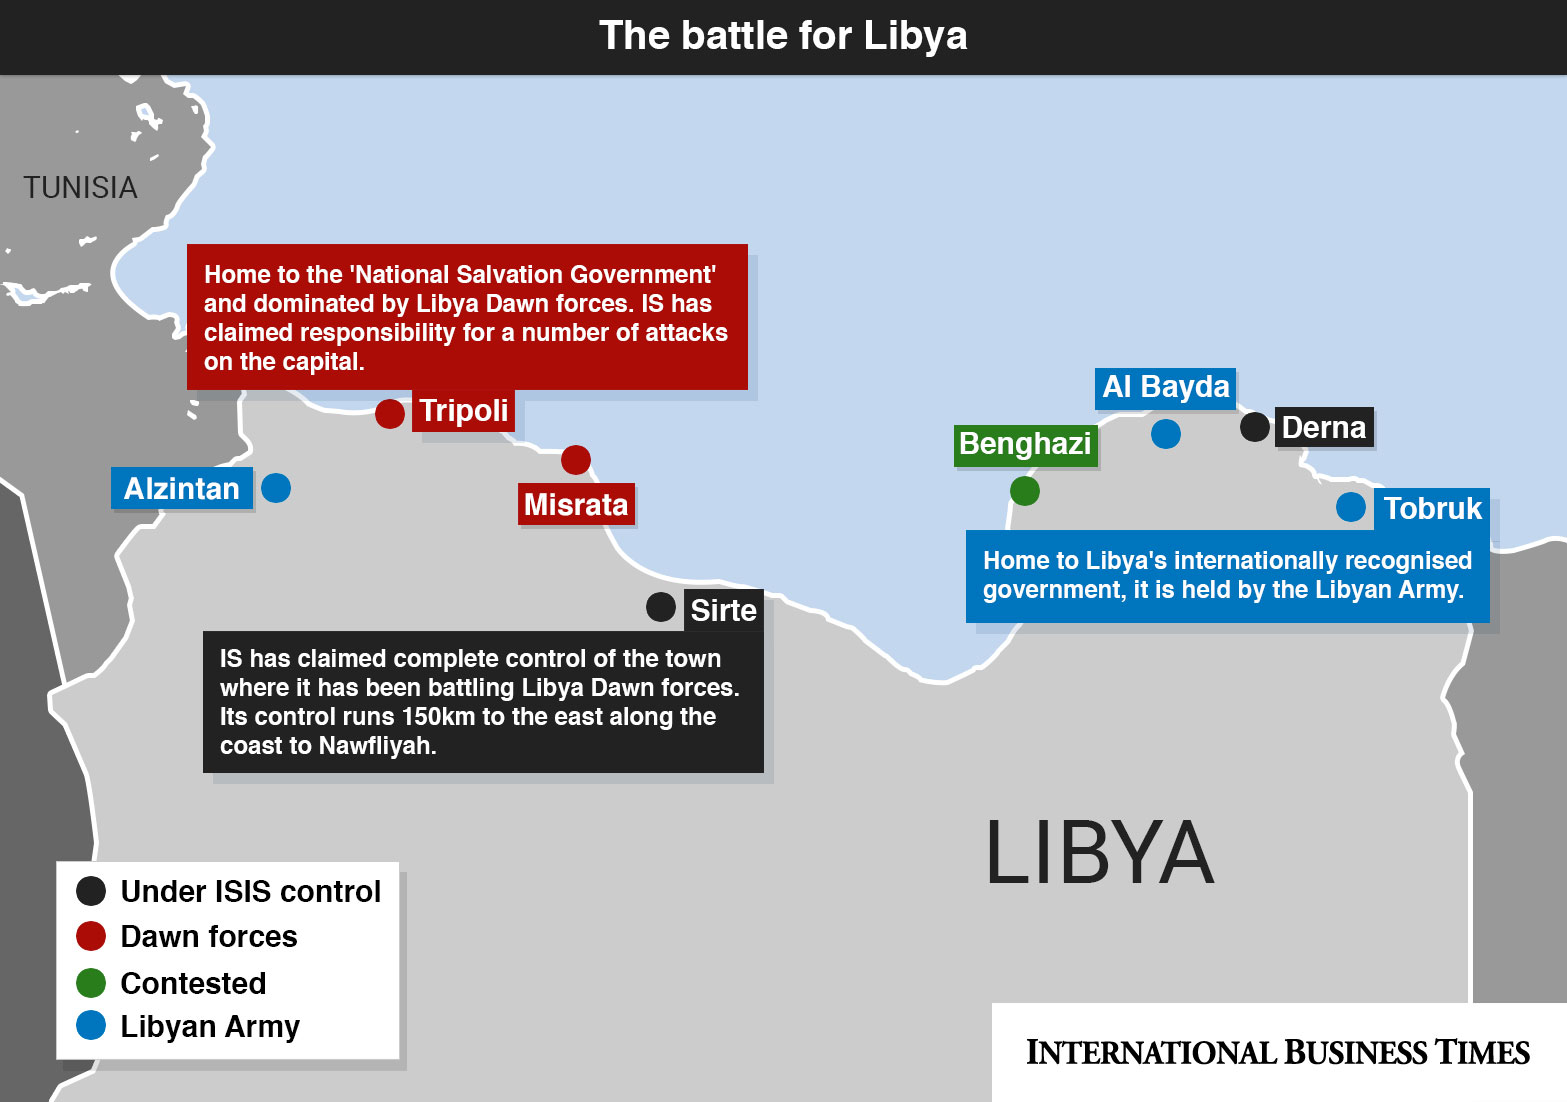 The Battle for Libya